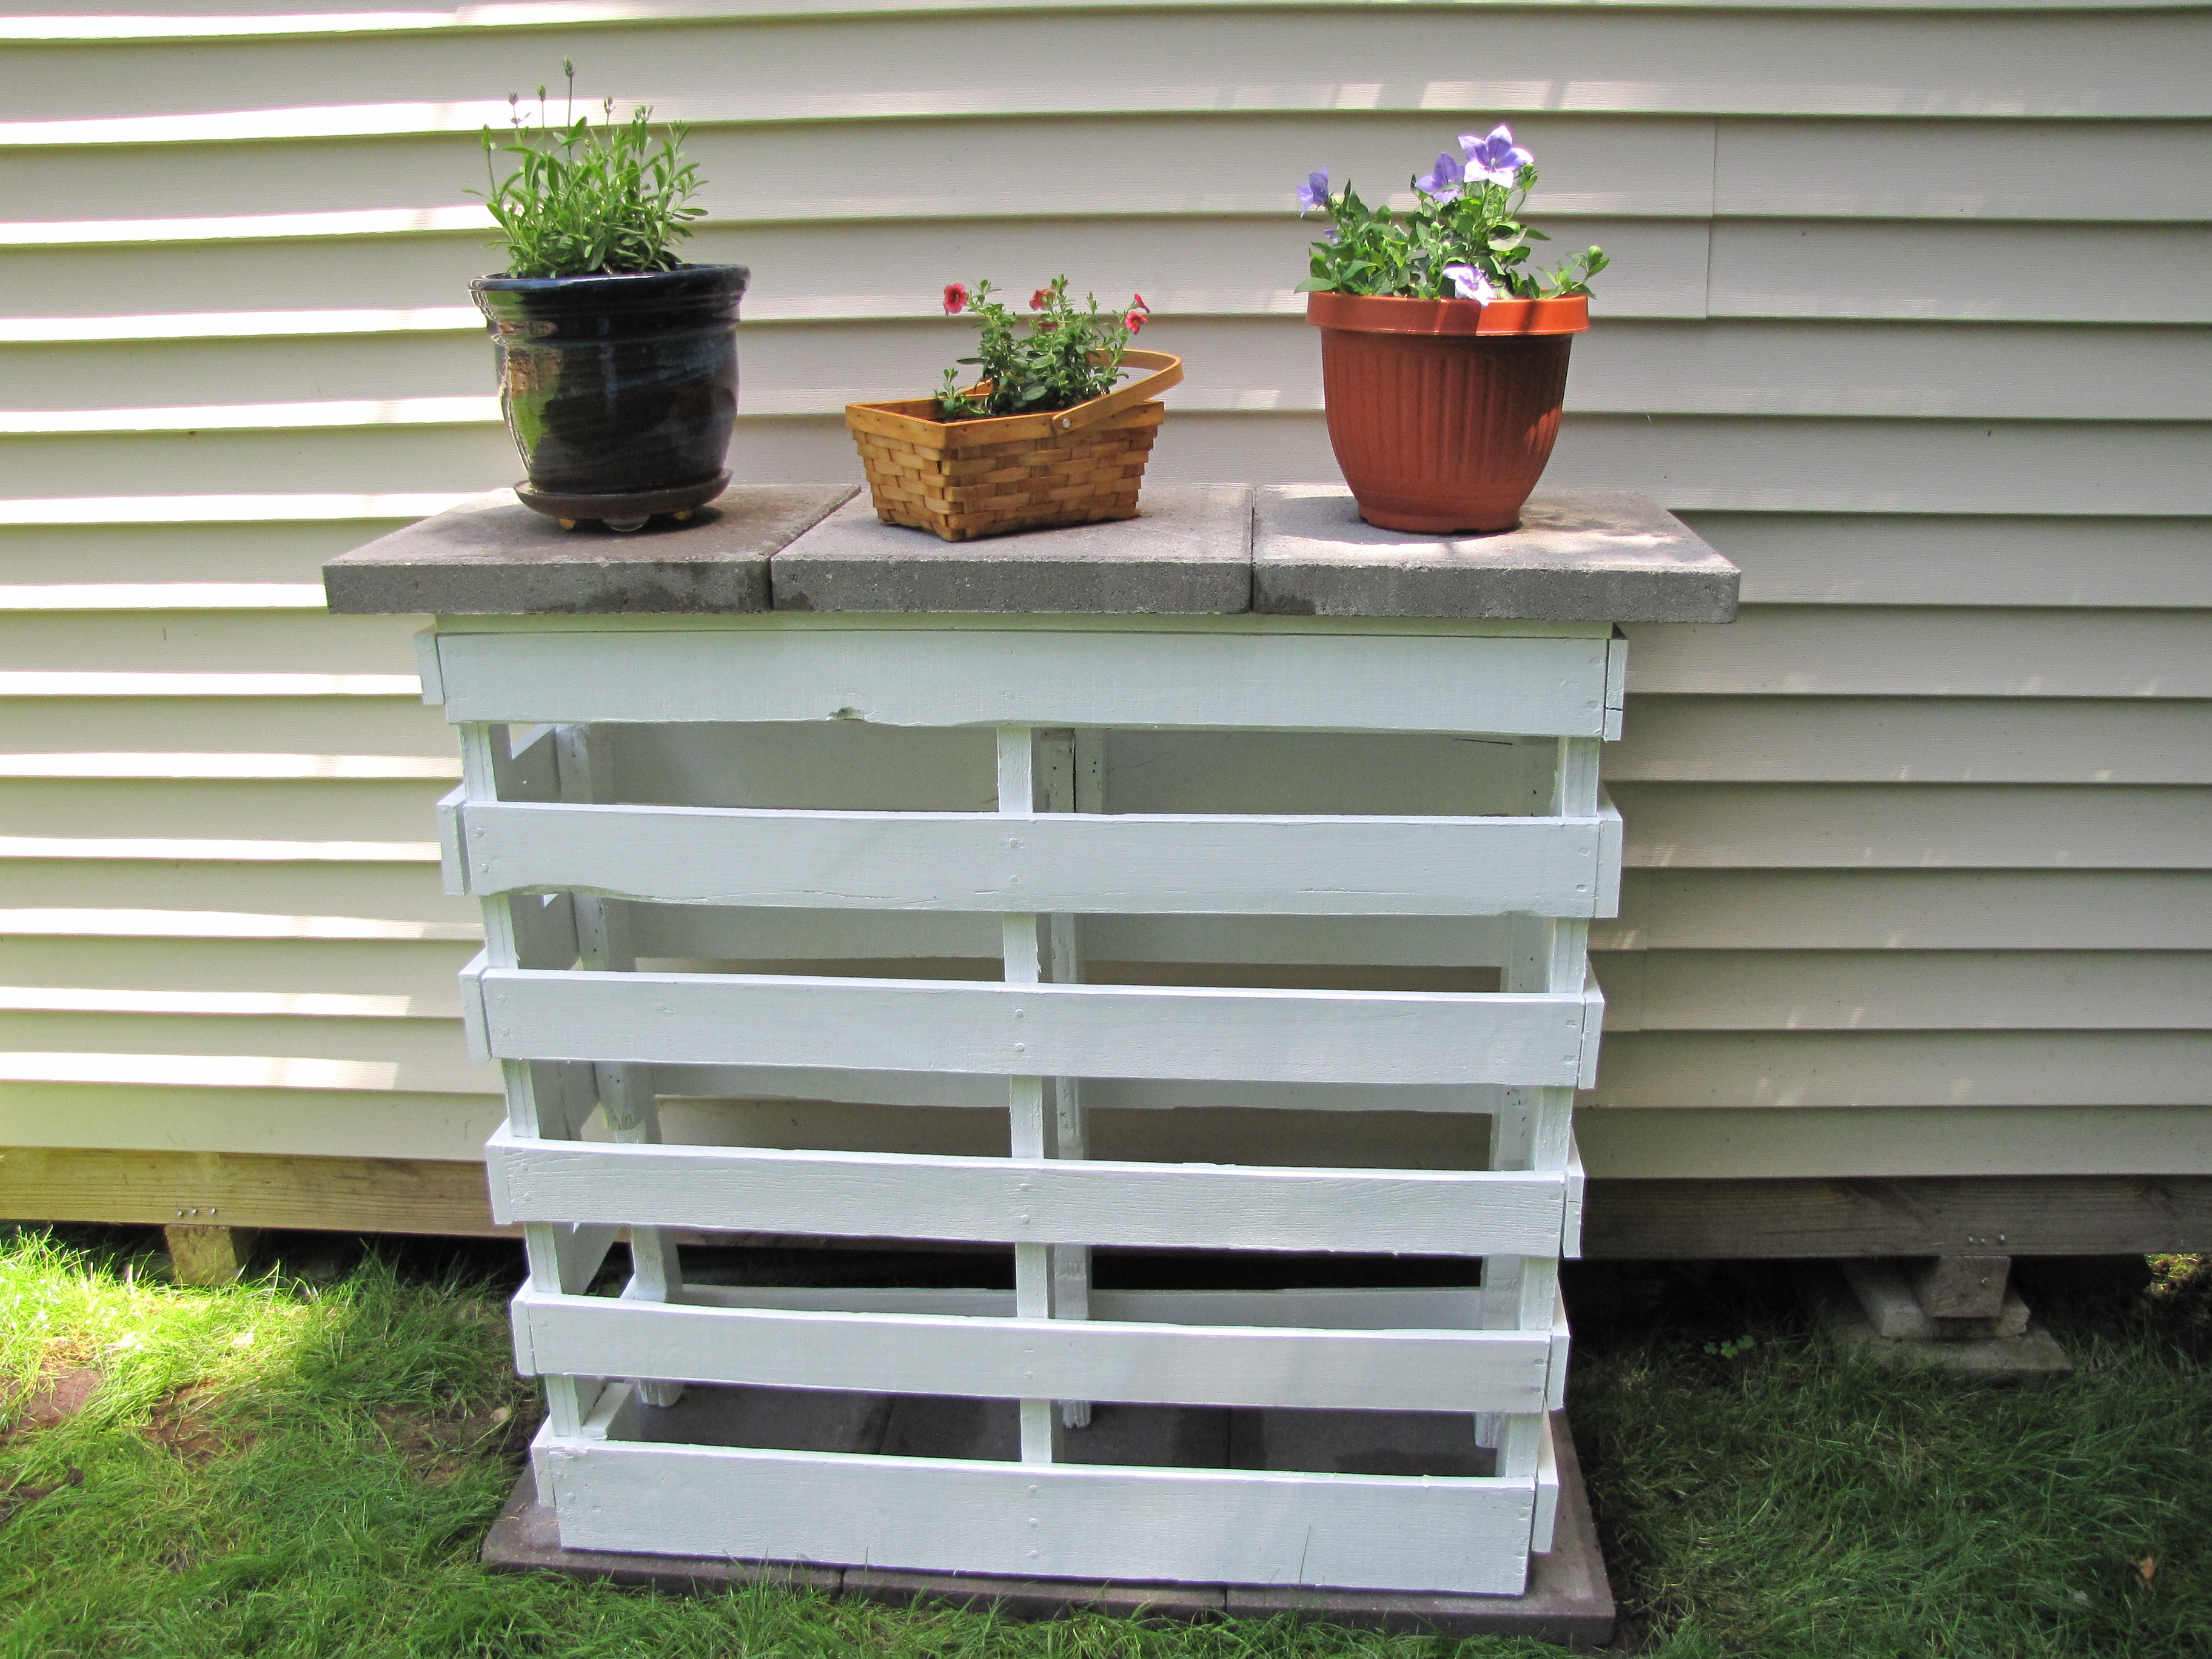 Build Plant Stand Wood How To Make A Plant Stand Out Of Pallets Pdf Plans